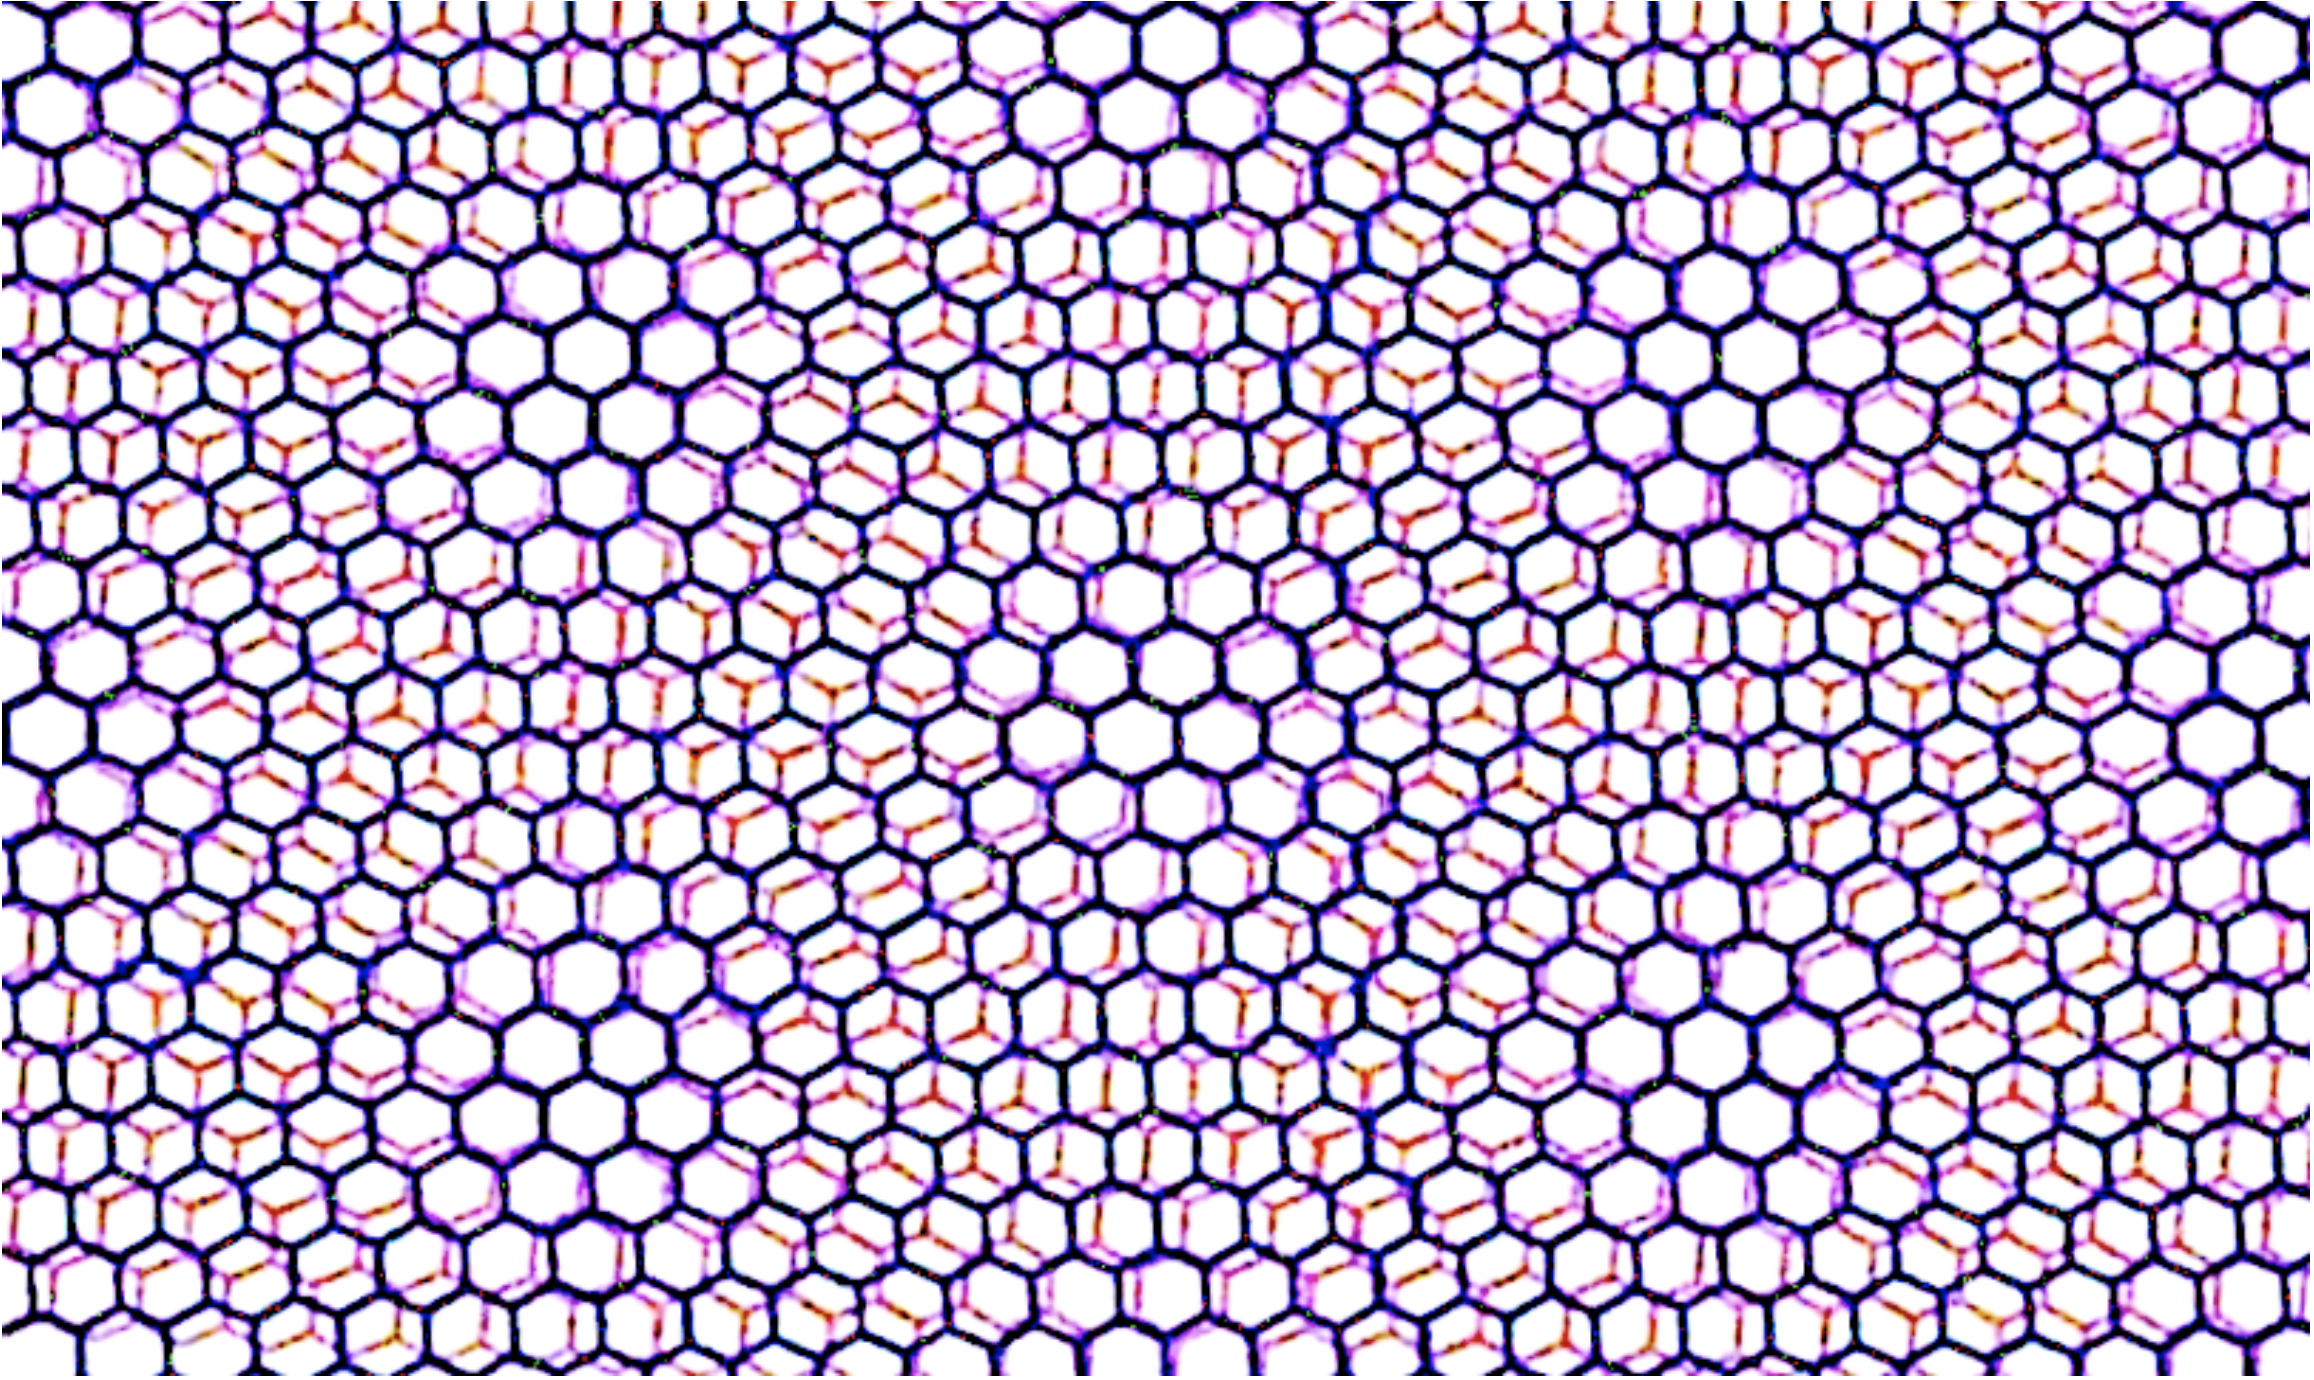 Magic angle graphene